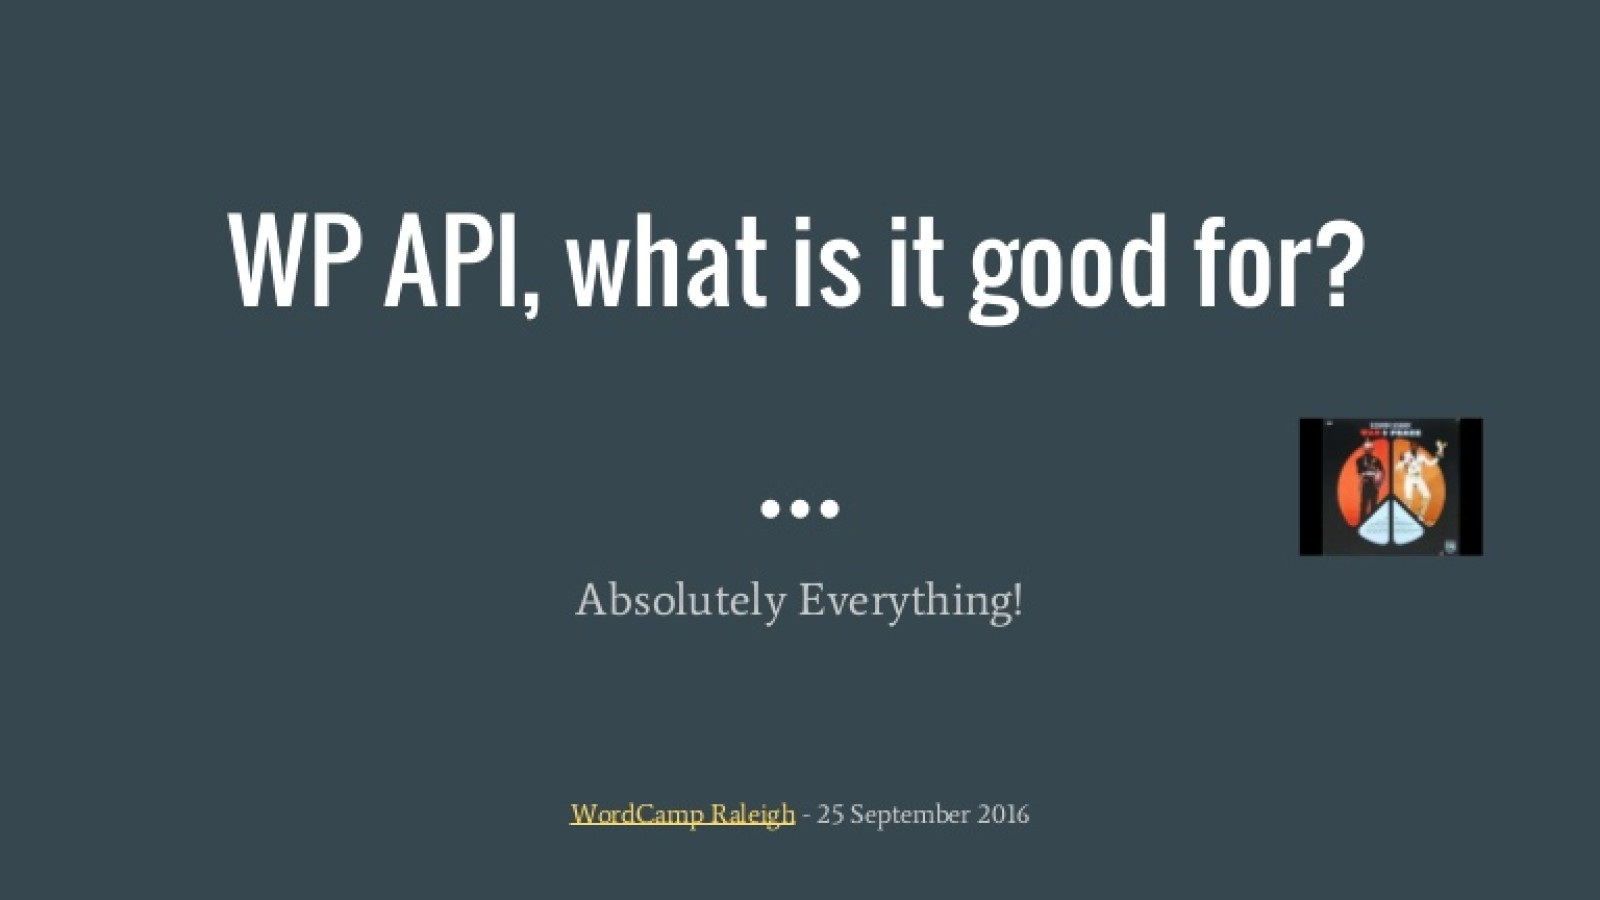 WP API, What is it Good For? Absolutely Everything!